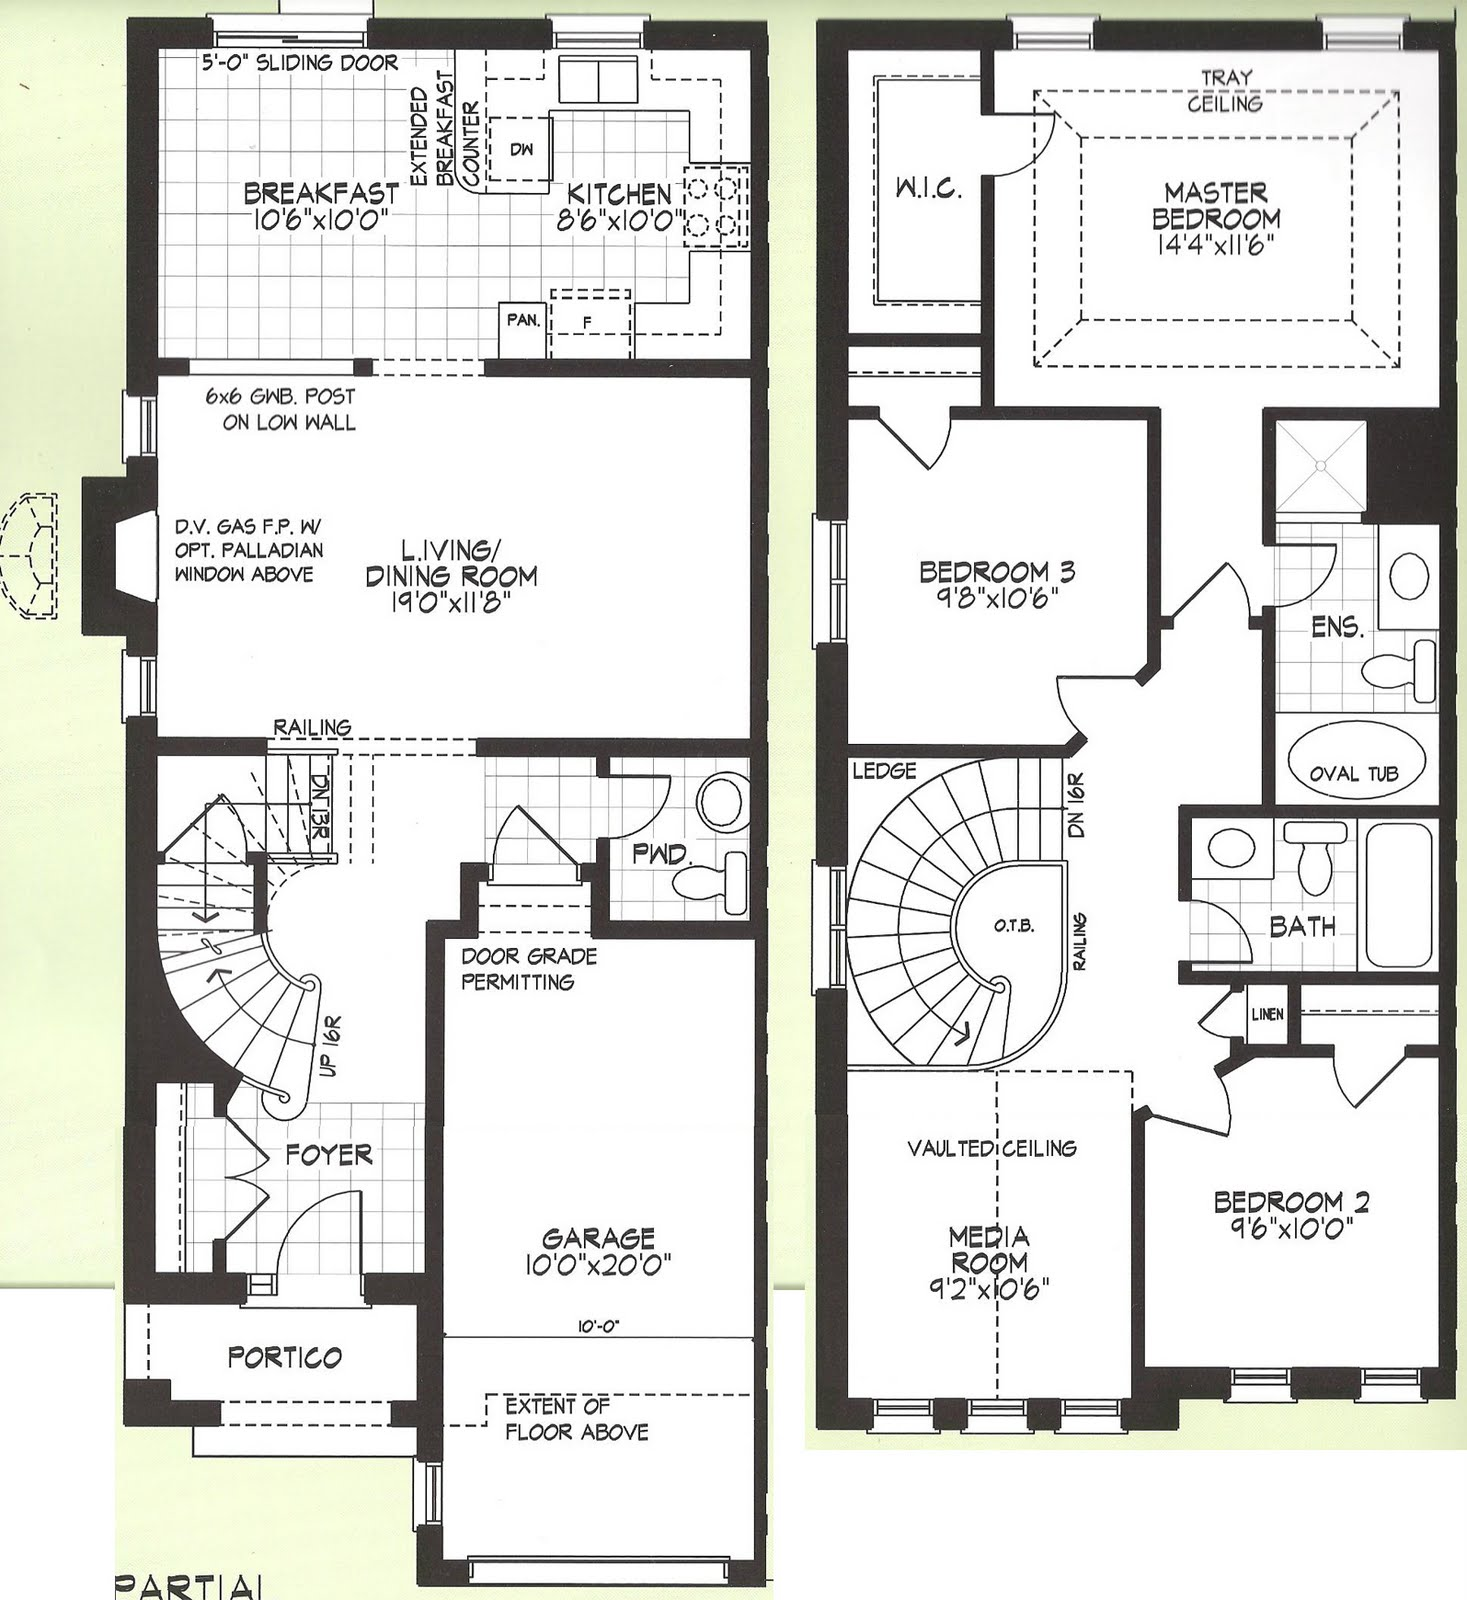 eames house floor plan dimensions home design interior decoration